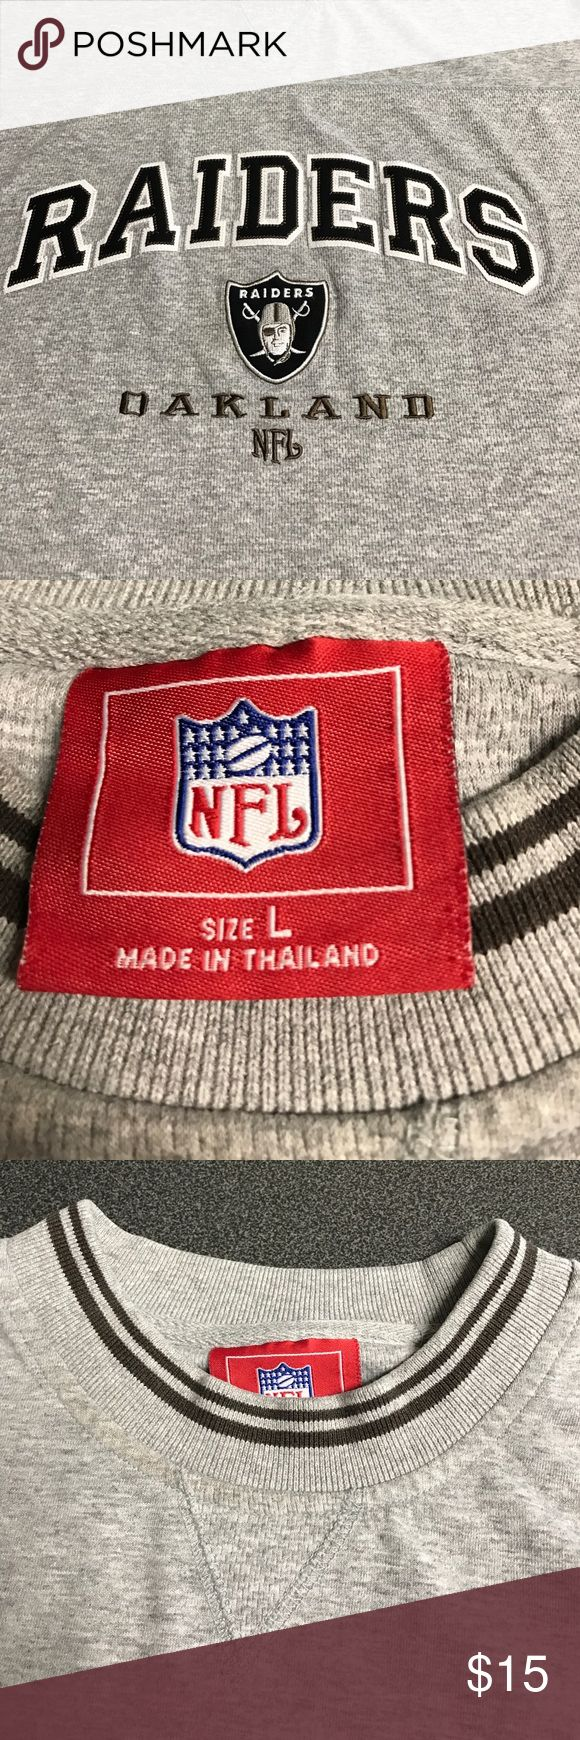 Oakland raiders long sleeve sweater Oakland raiders size large in great condition nfl Shirts Sweatshirts & Hoodies